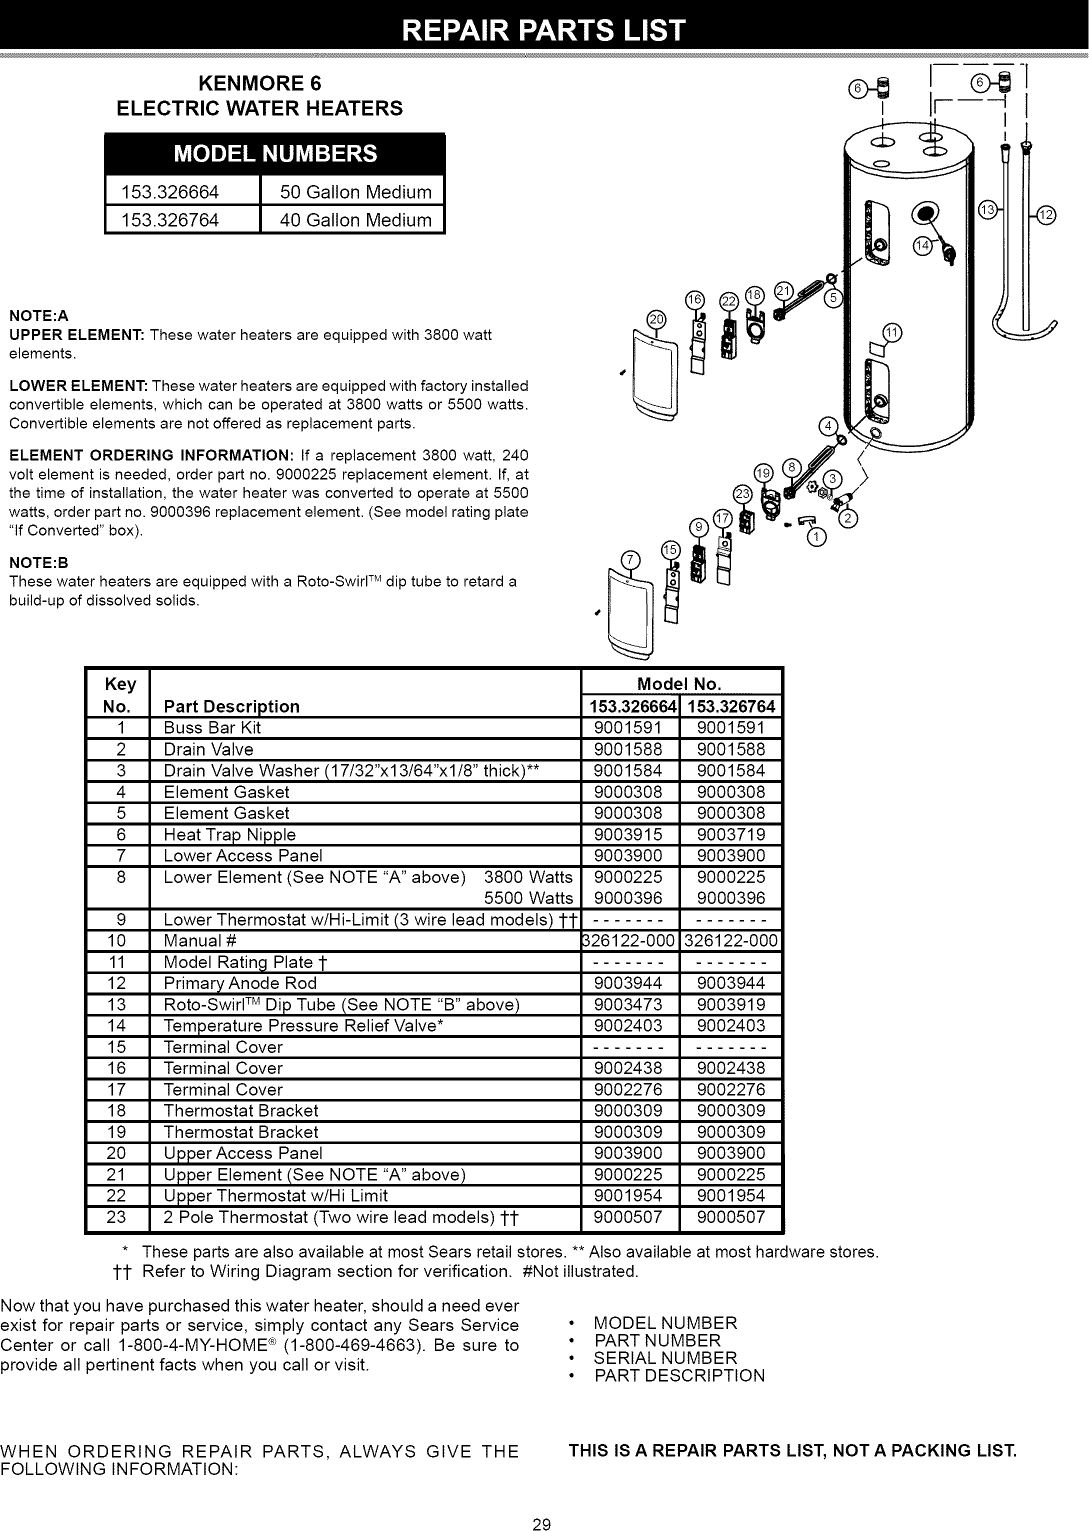 40 Gallon Electric Water Heater Wiring Diagram - series wbv ... on